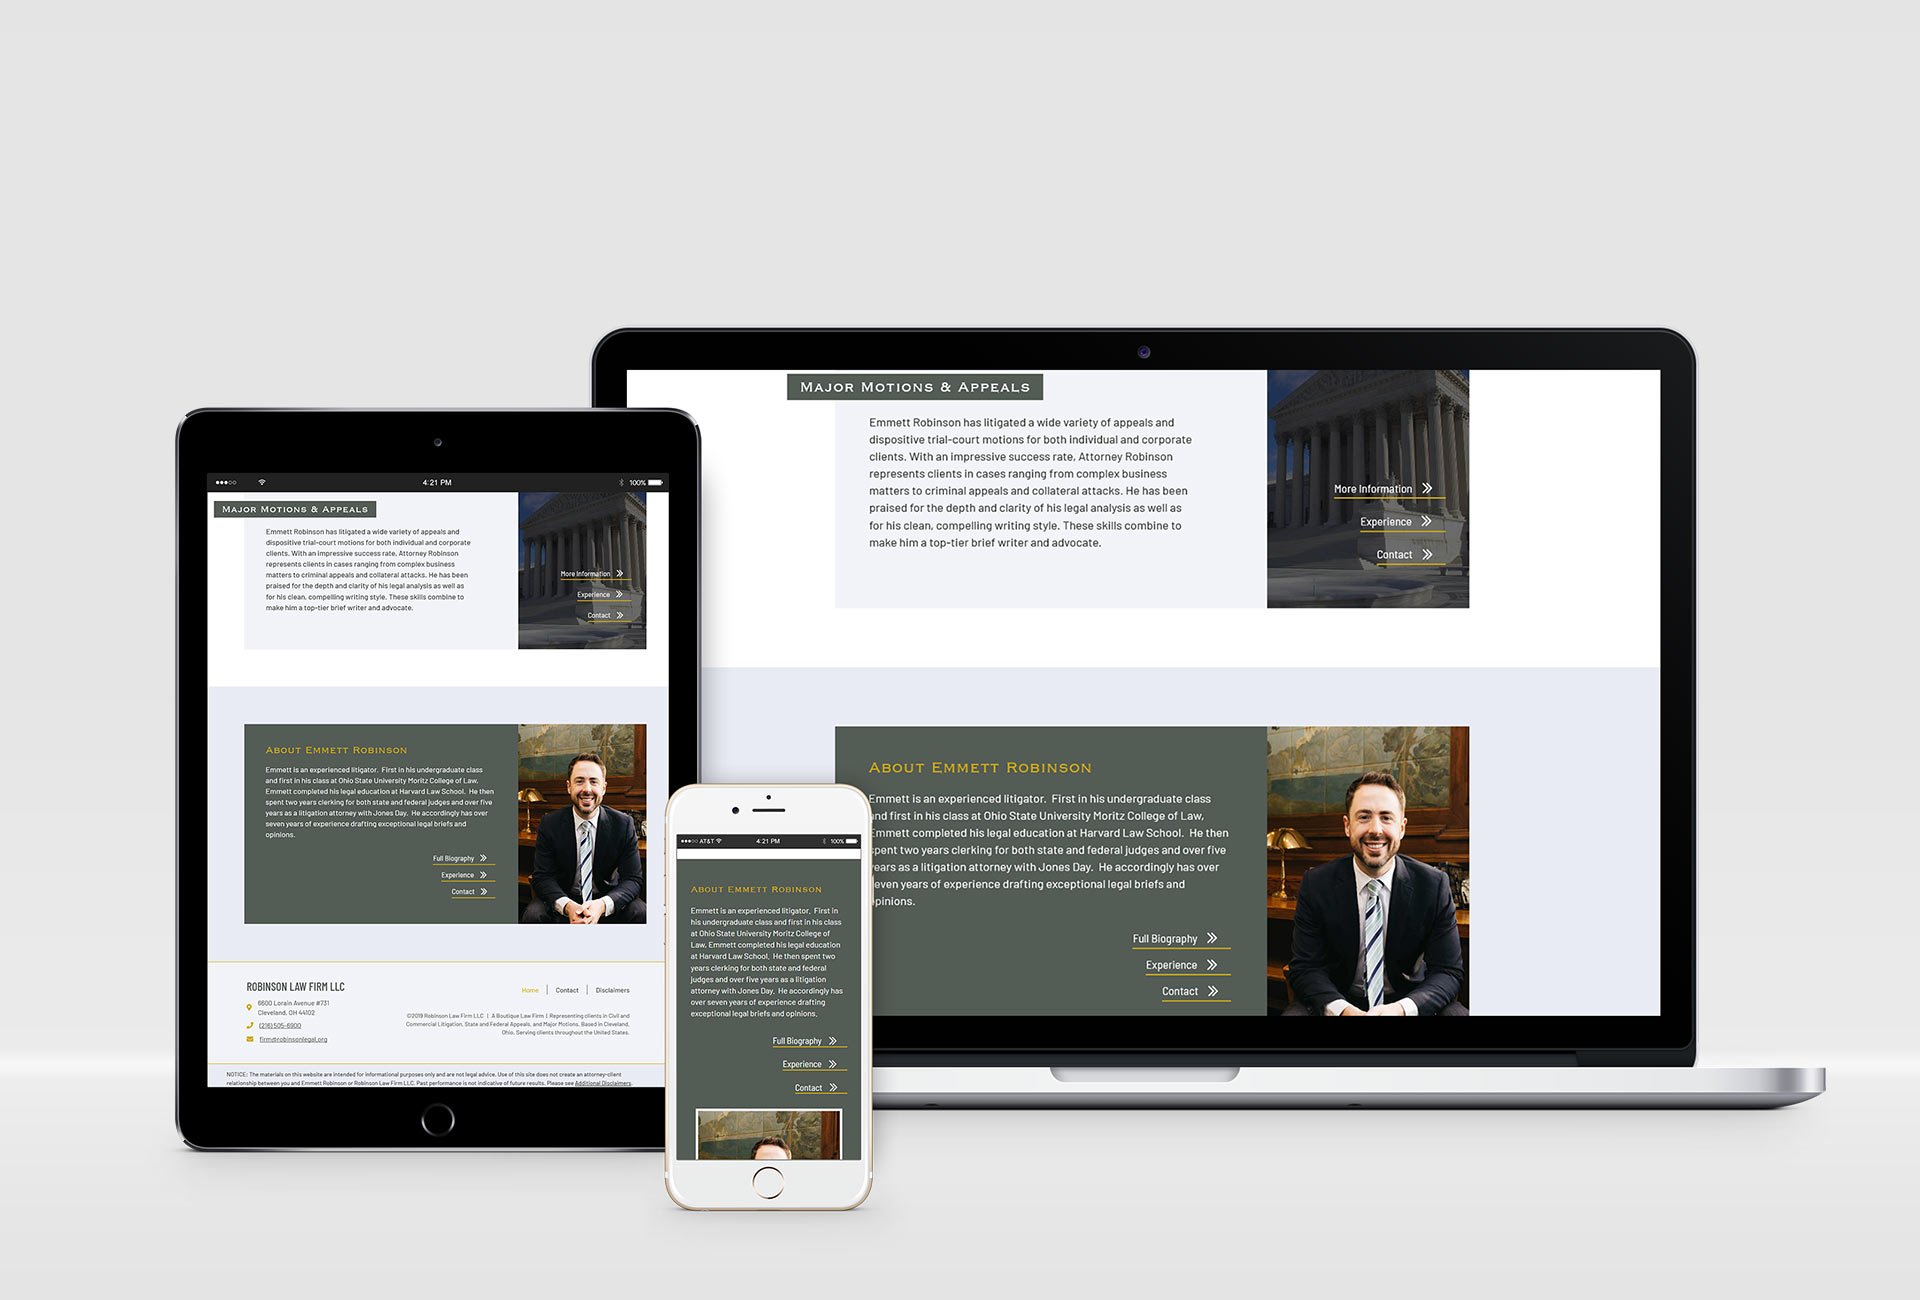 law firm website design mockup5